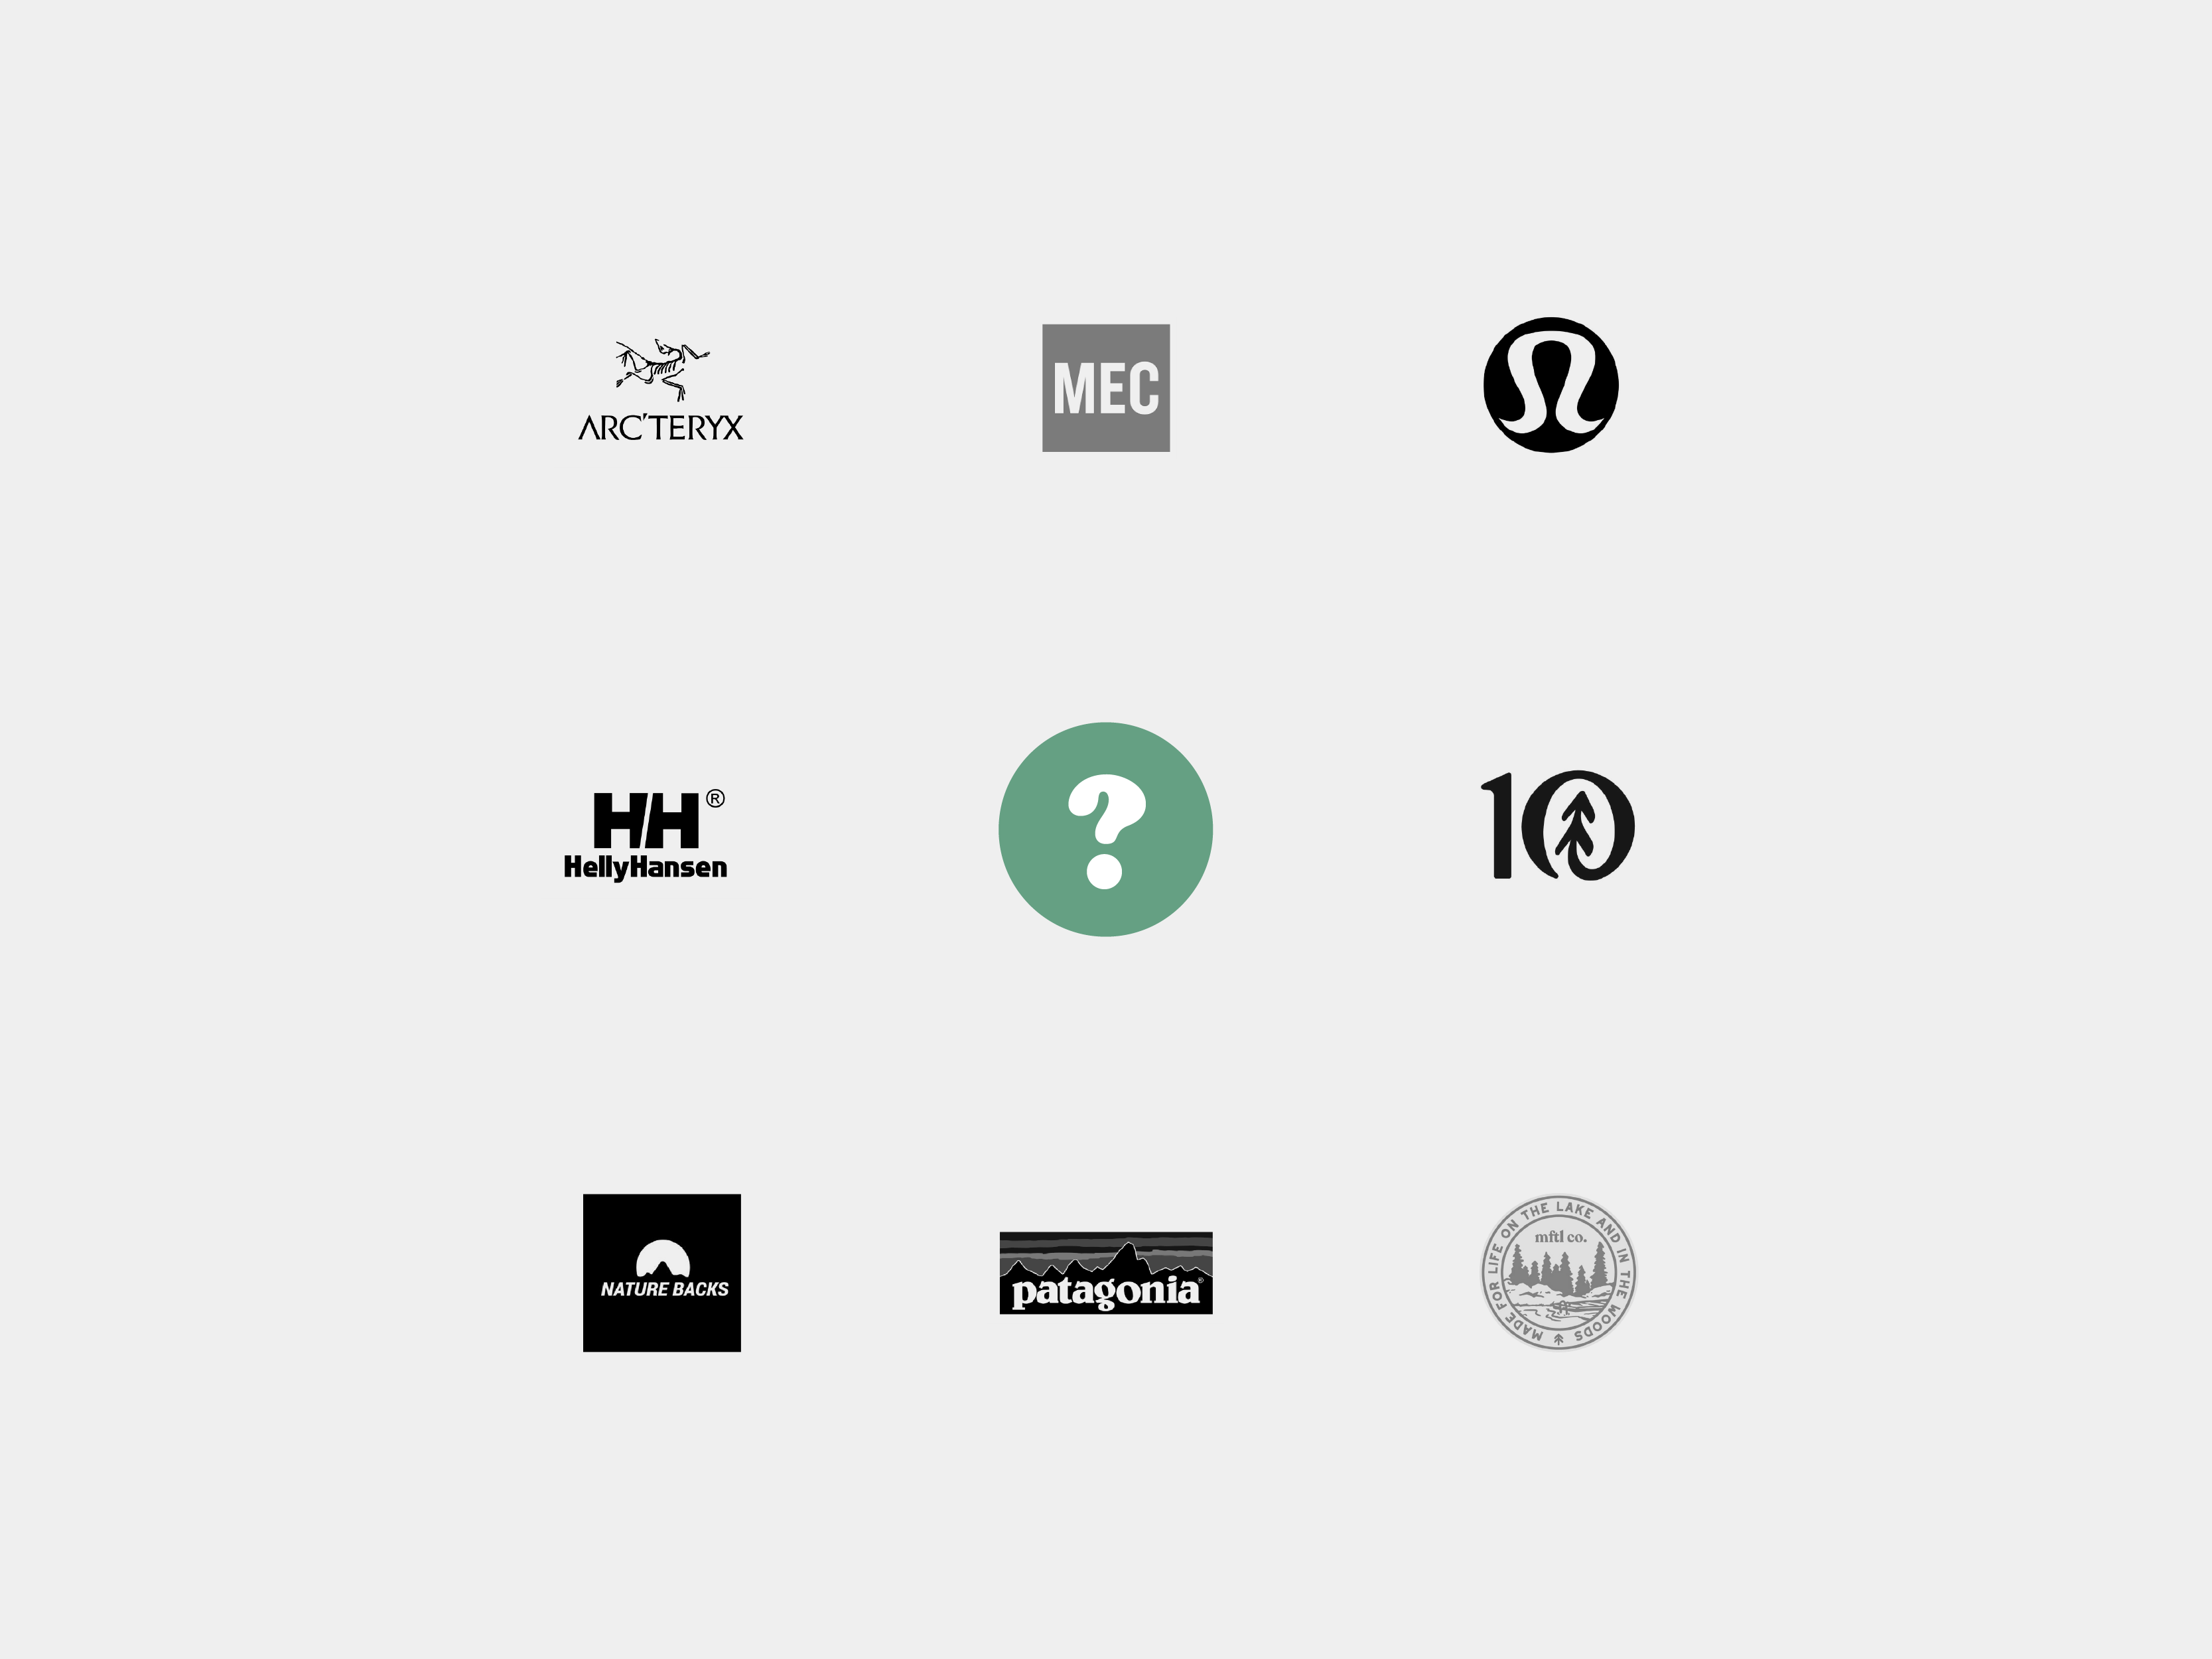 photo of competing outdoors company logos